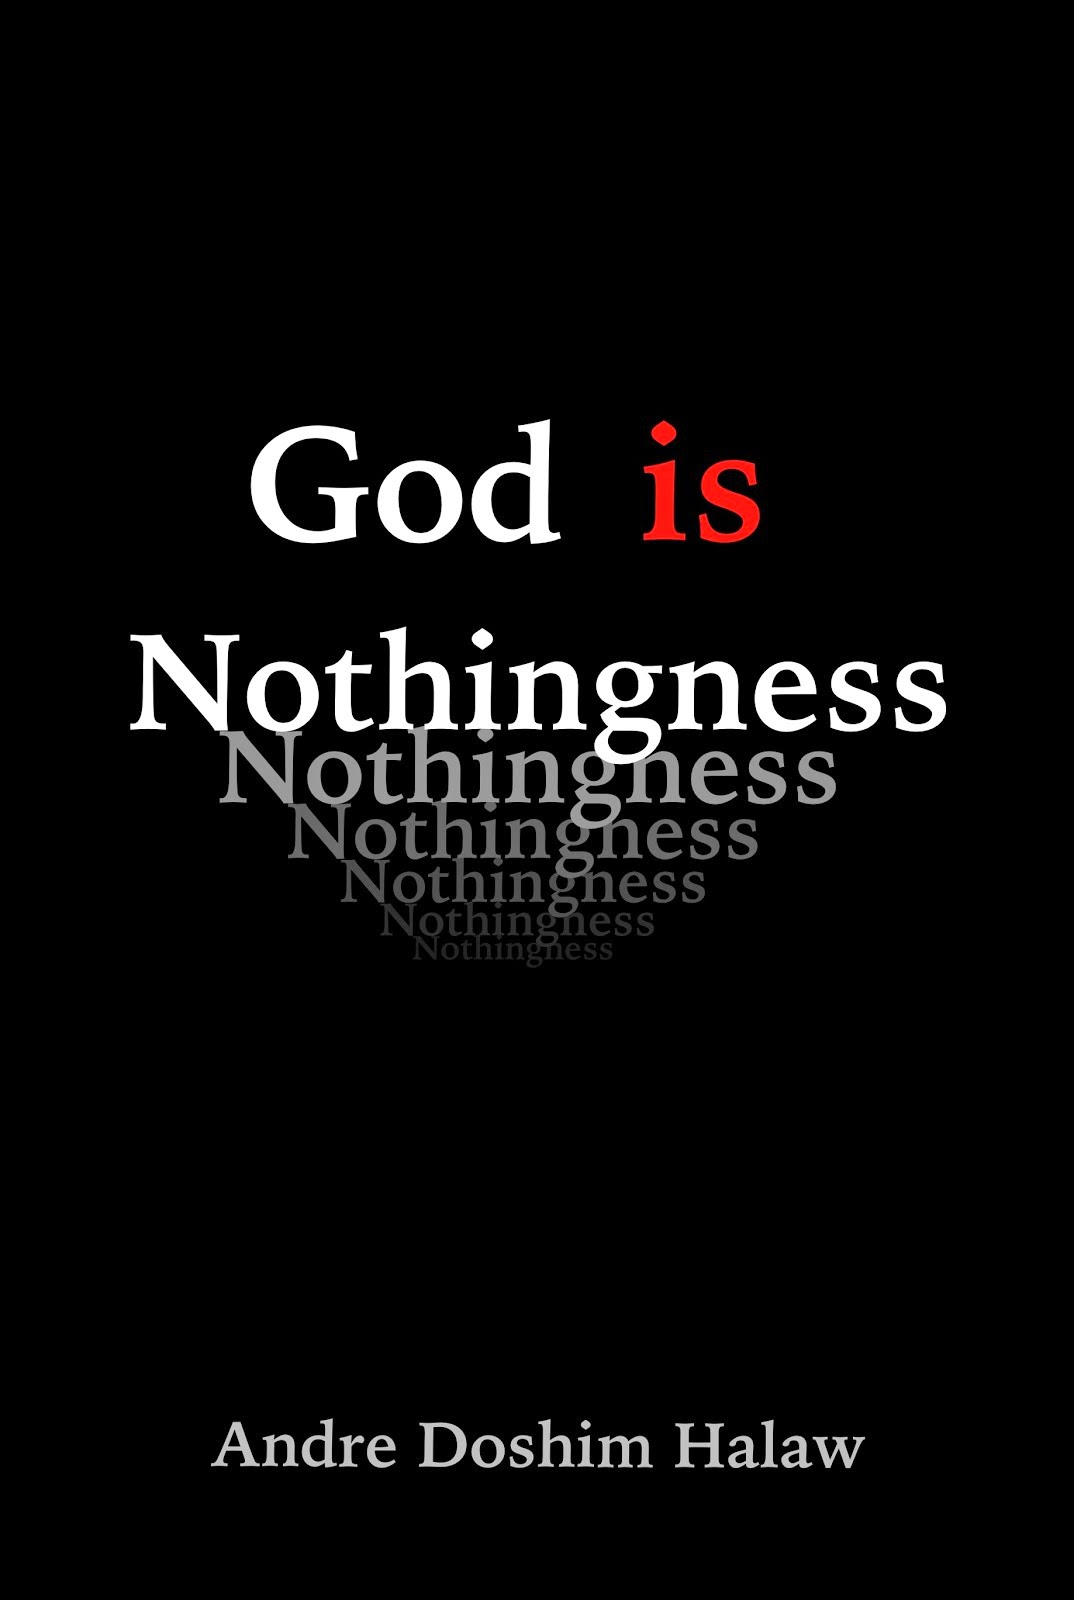 God is Nothingness